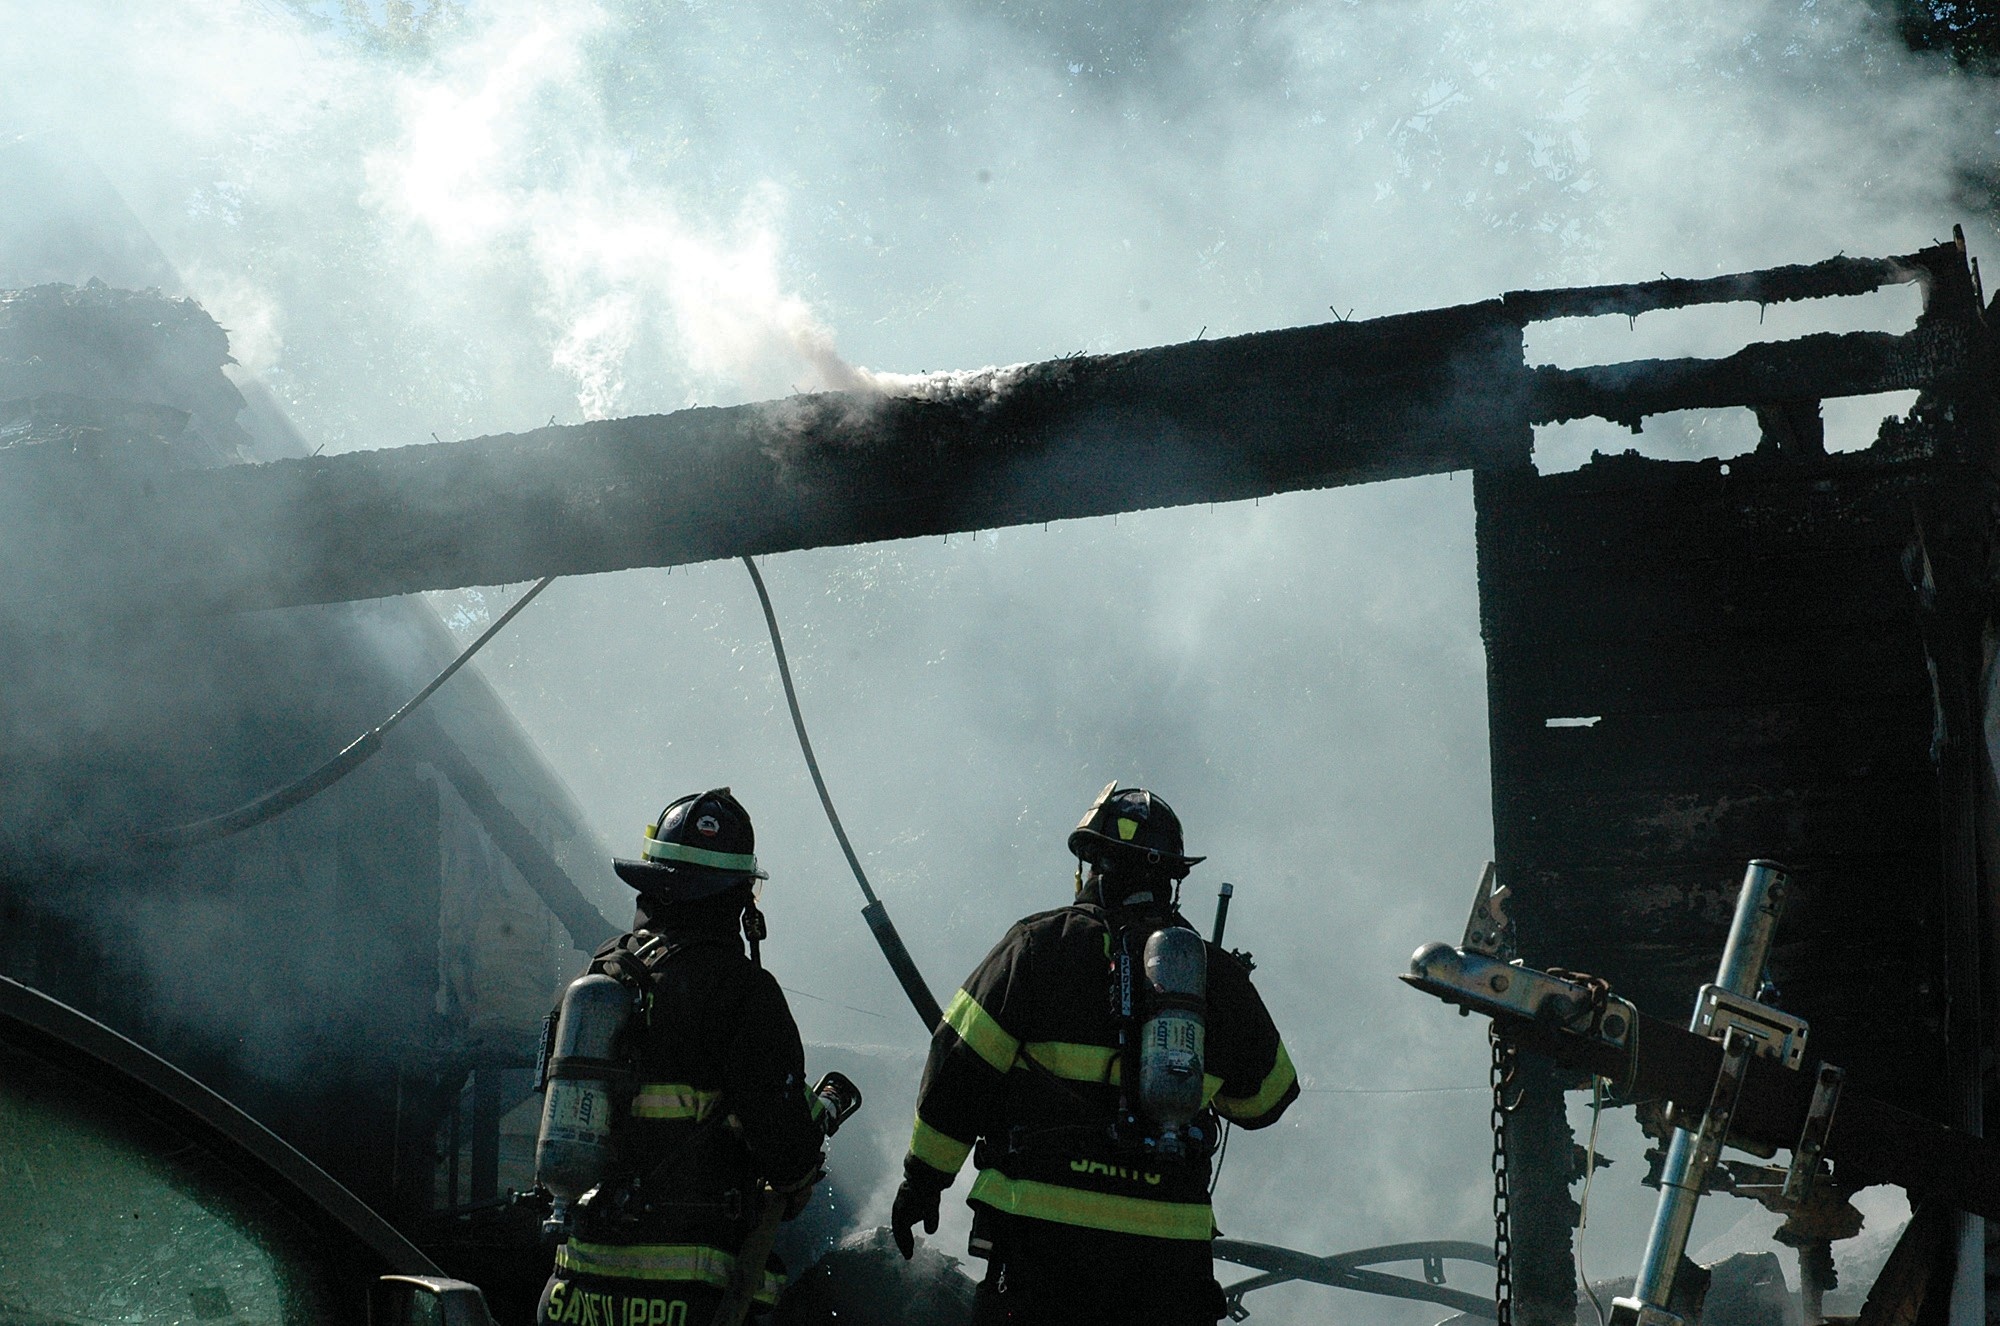 Two firefighters work to extinguish a blaze that destroyed the garage of a home at 387 South St. in Biddeford late Wednesday morning.